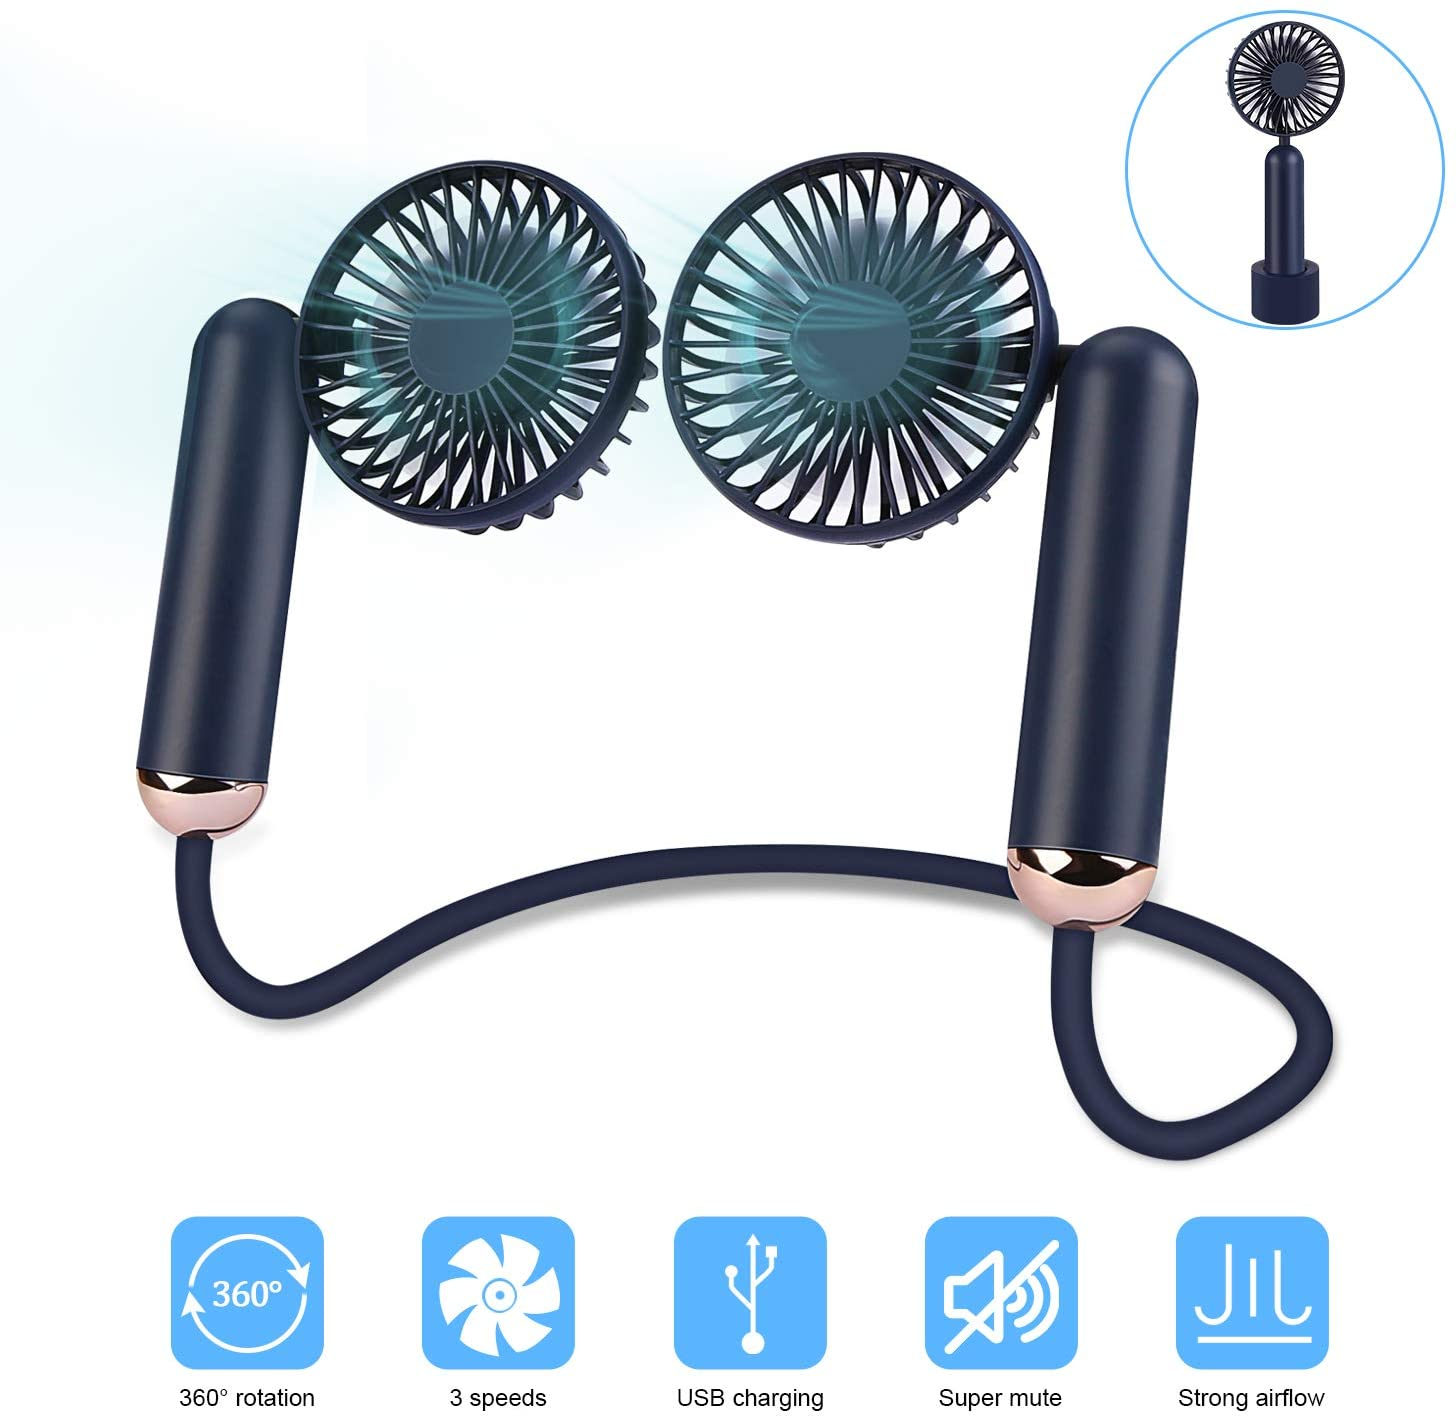 Detachable Neck Fan with 2 Desk Fans Small Quiet,Multifunction USB Rechargeable Personal Baby Car Seat Fan,Adjustable 3 Speeds Cooling Fan for Home Office Travel Outdoor Sports (Navy Blue)